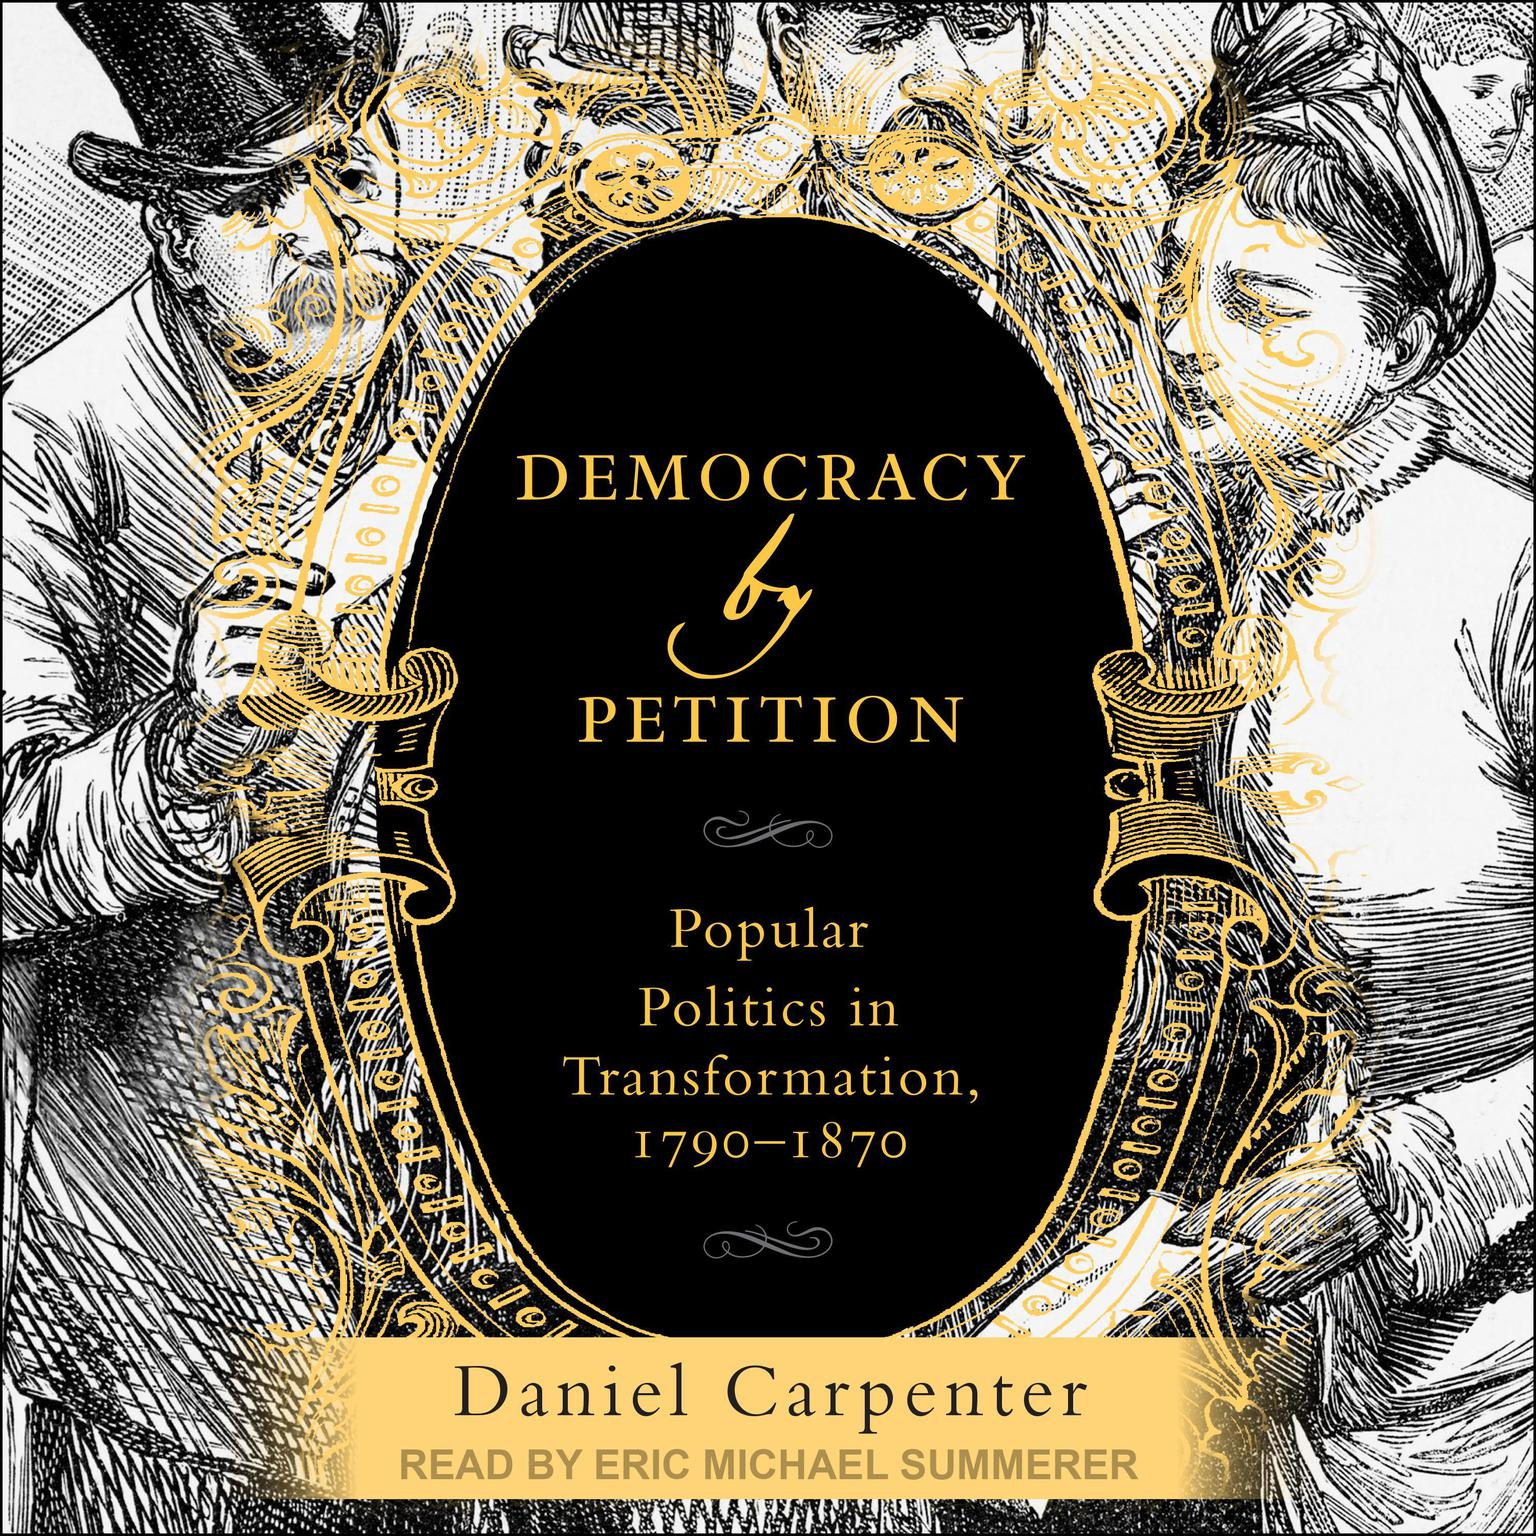 Democracy by Petition: Popular Politics in Transformation, 1790-1870 Audiobook, by Daniel Carpenter